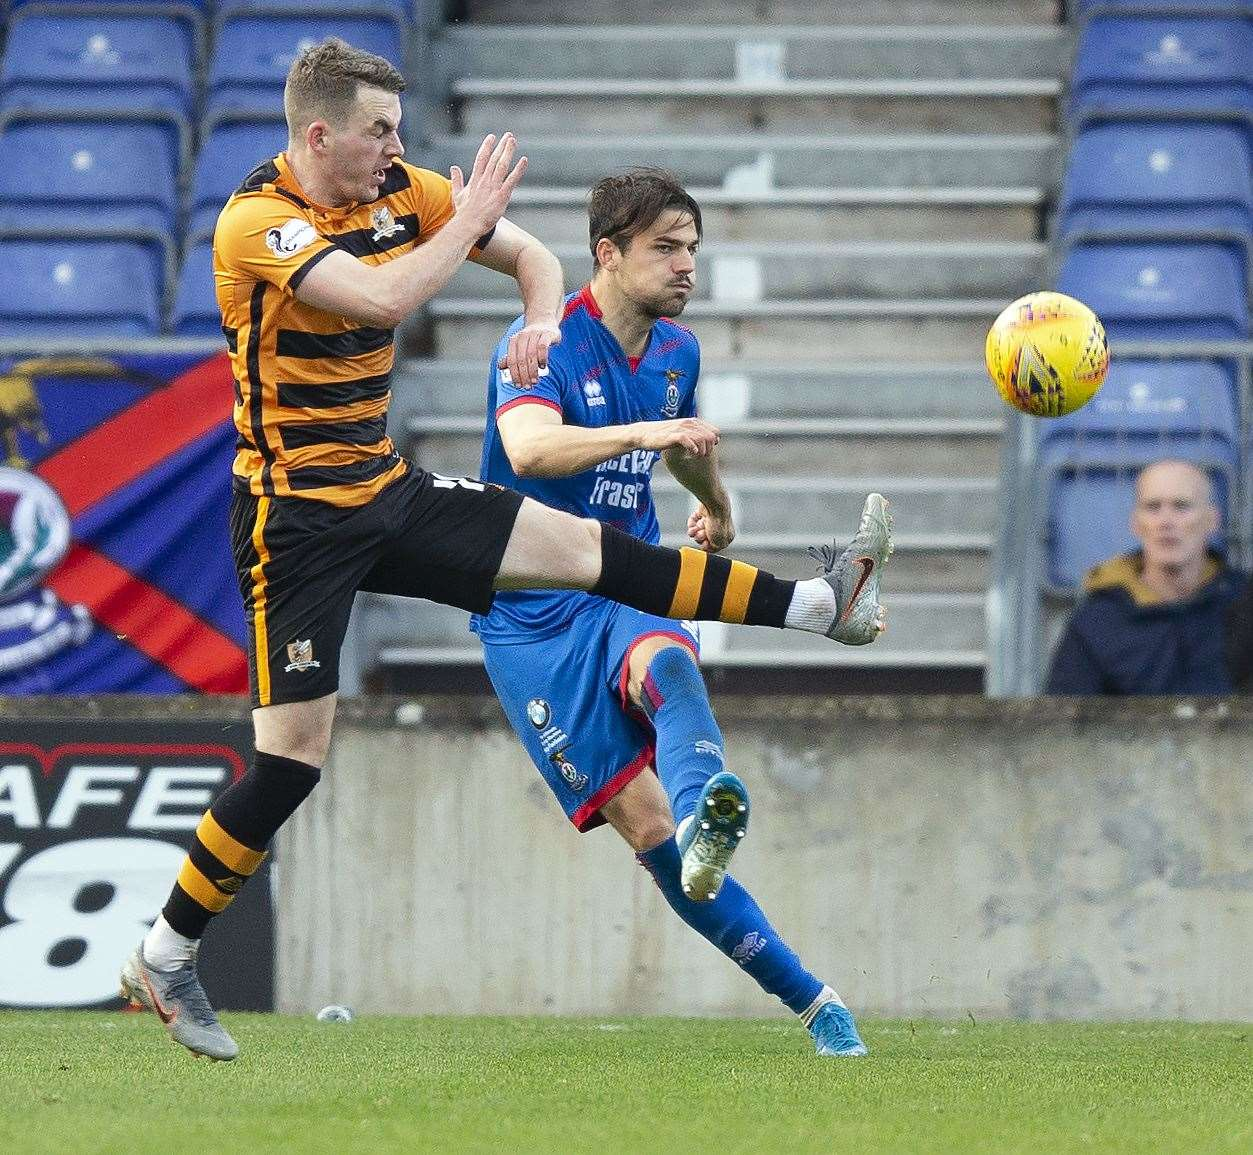 Picture - Ken Macpherson, Inverness. Inverness CT(2) v Alloa(2). 19.10.19. ICT's Charlie Trafford clears from Alloa's Adam Brown.